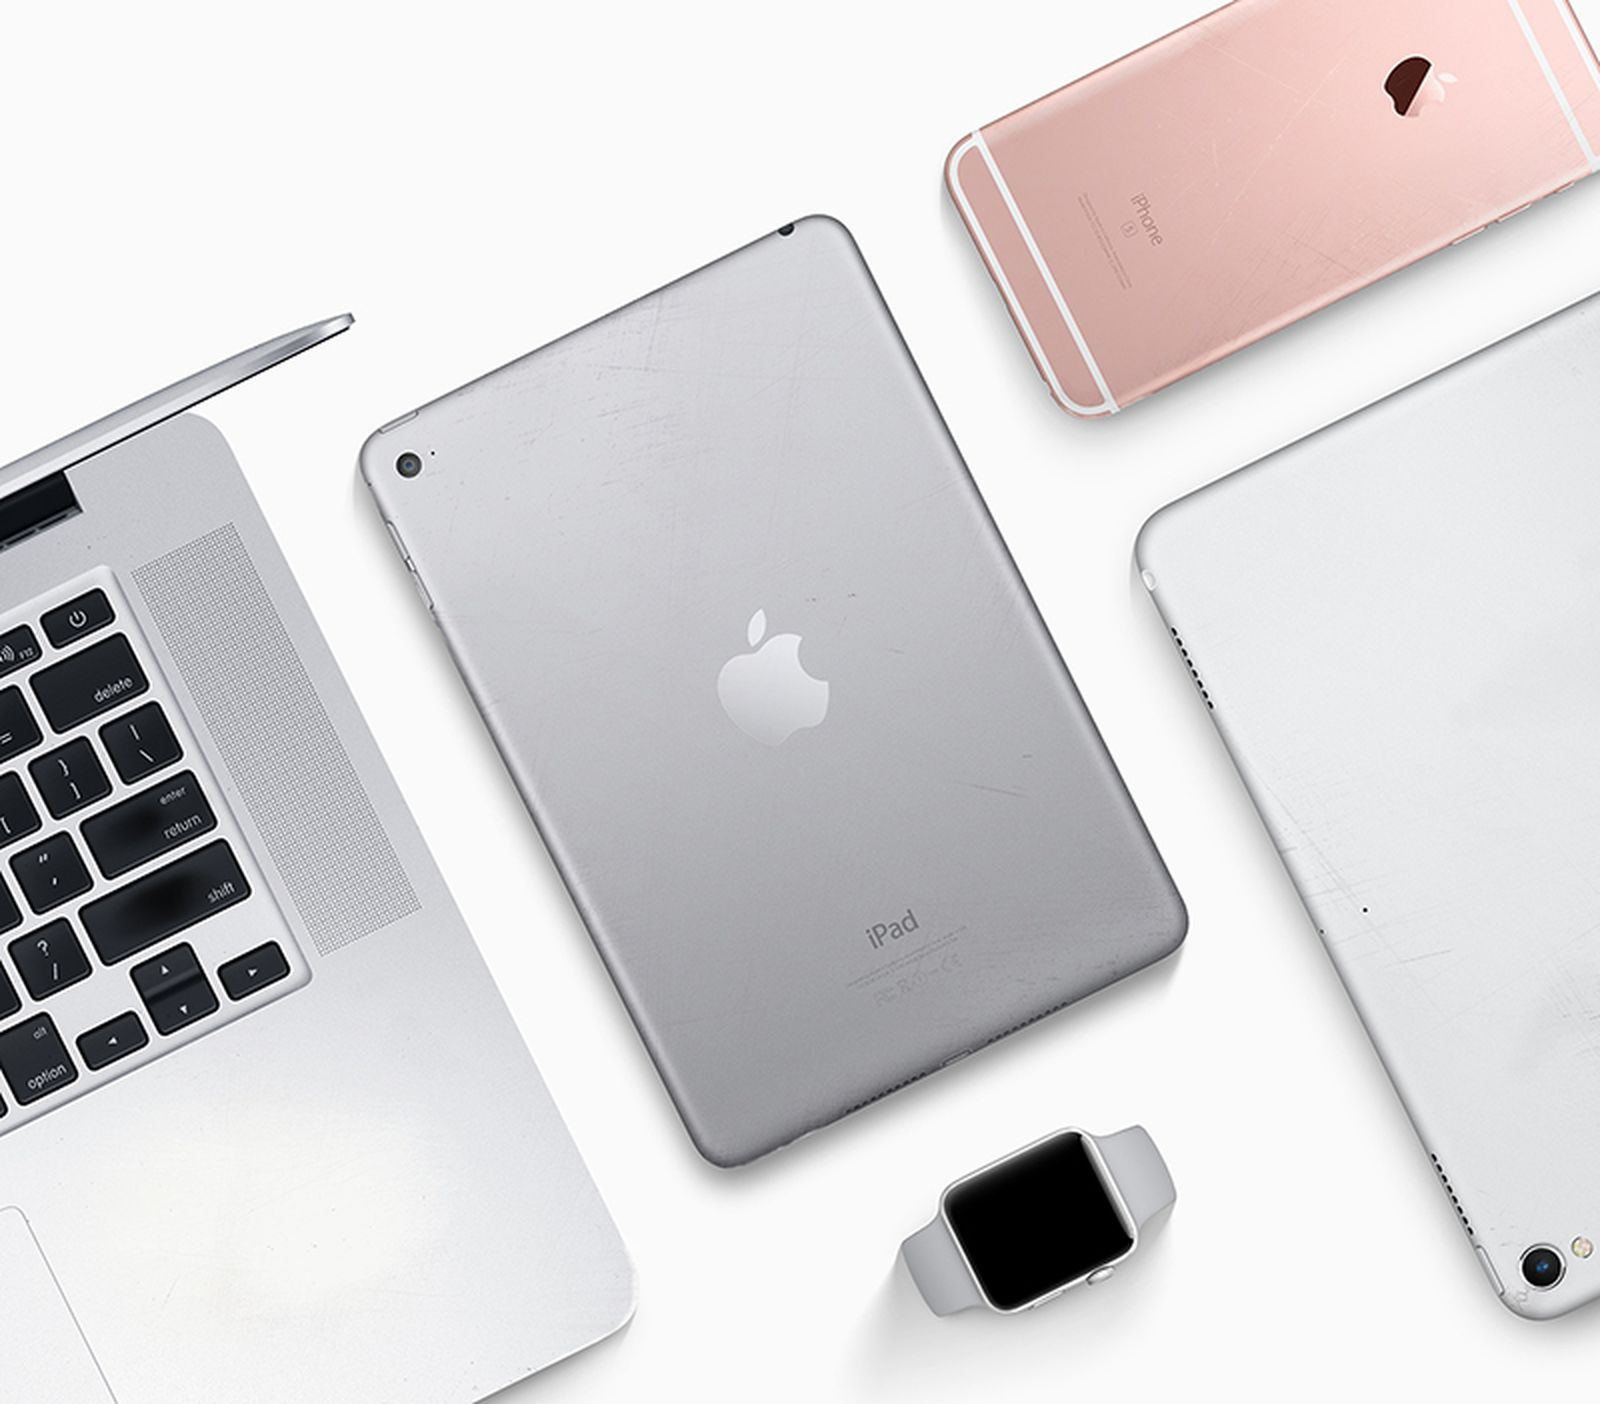 Apple Offers Free Repairs of Products Damaged in Japan Floods - MacRumors